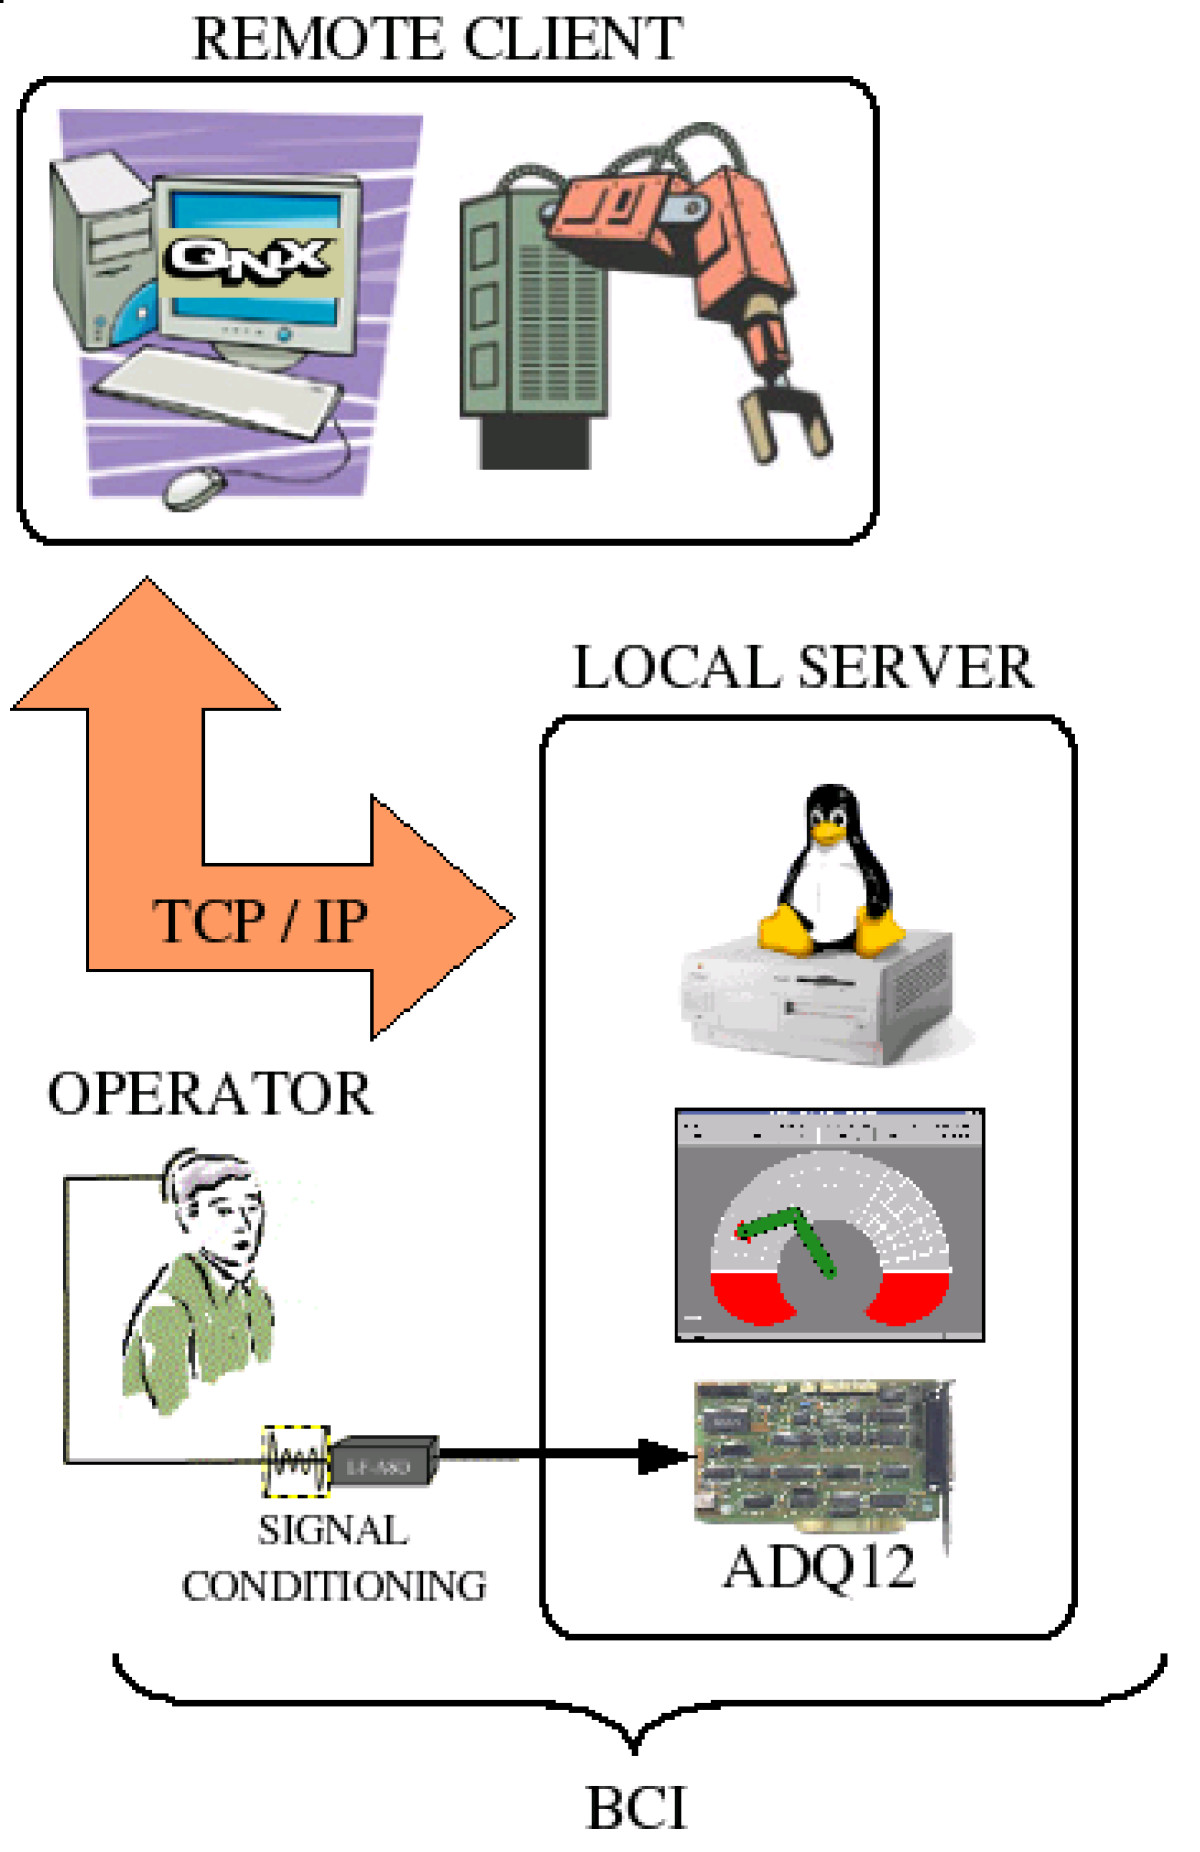 http://static-content.springer.com/image/art%3A10.1186%2F1743-0003-5-10/MediaObjects/12984_2007_Article_134_Fig12_HTML.jpg